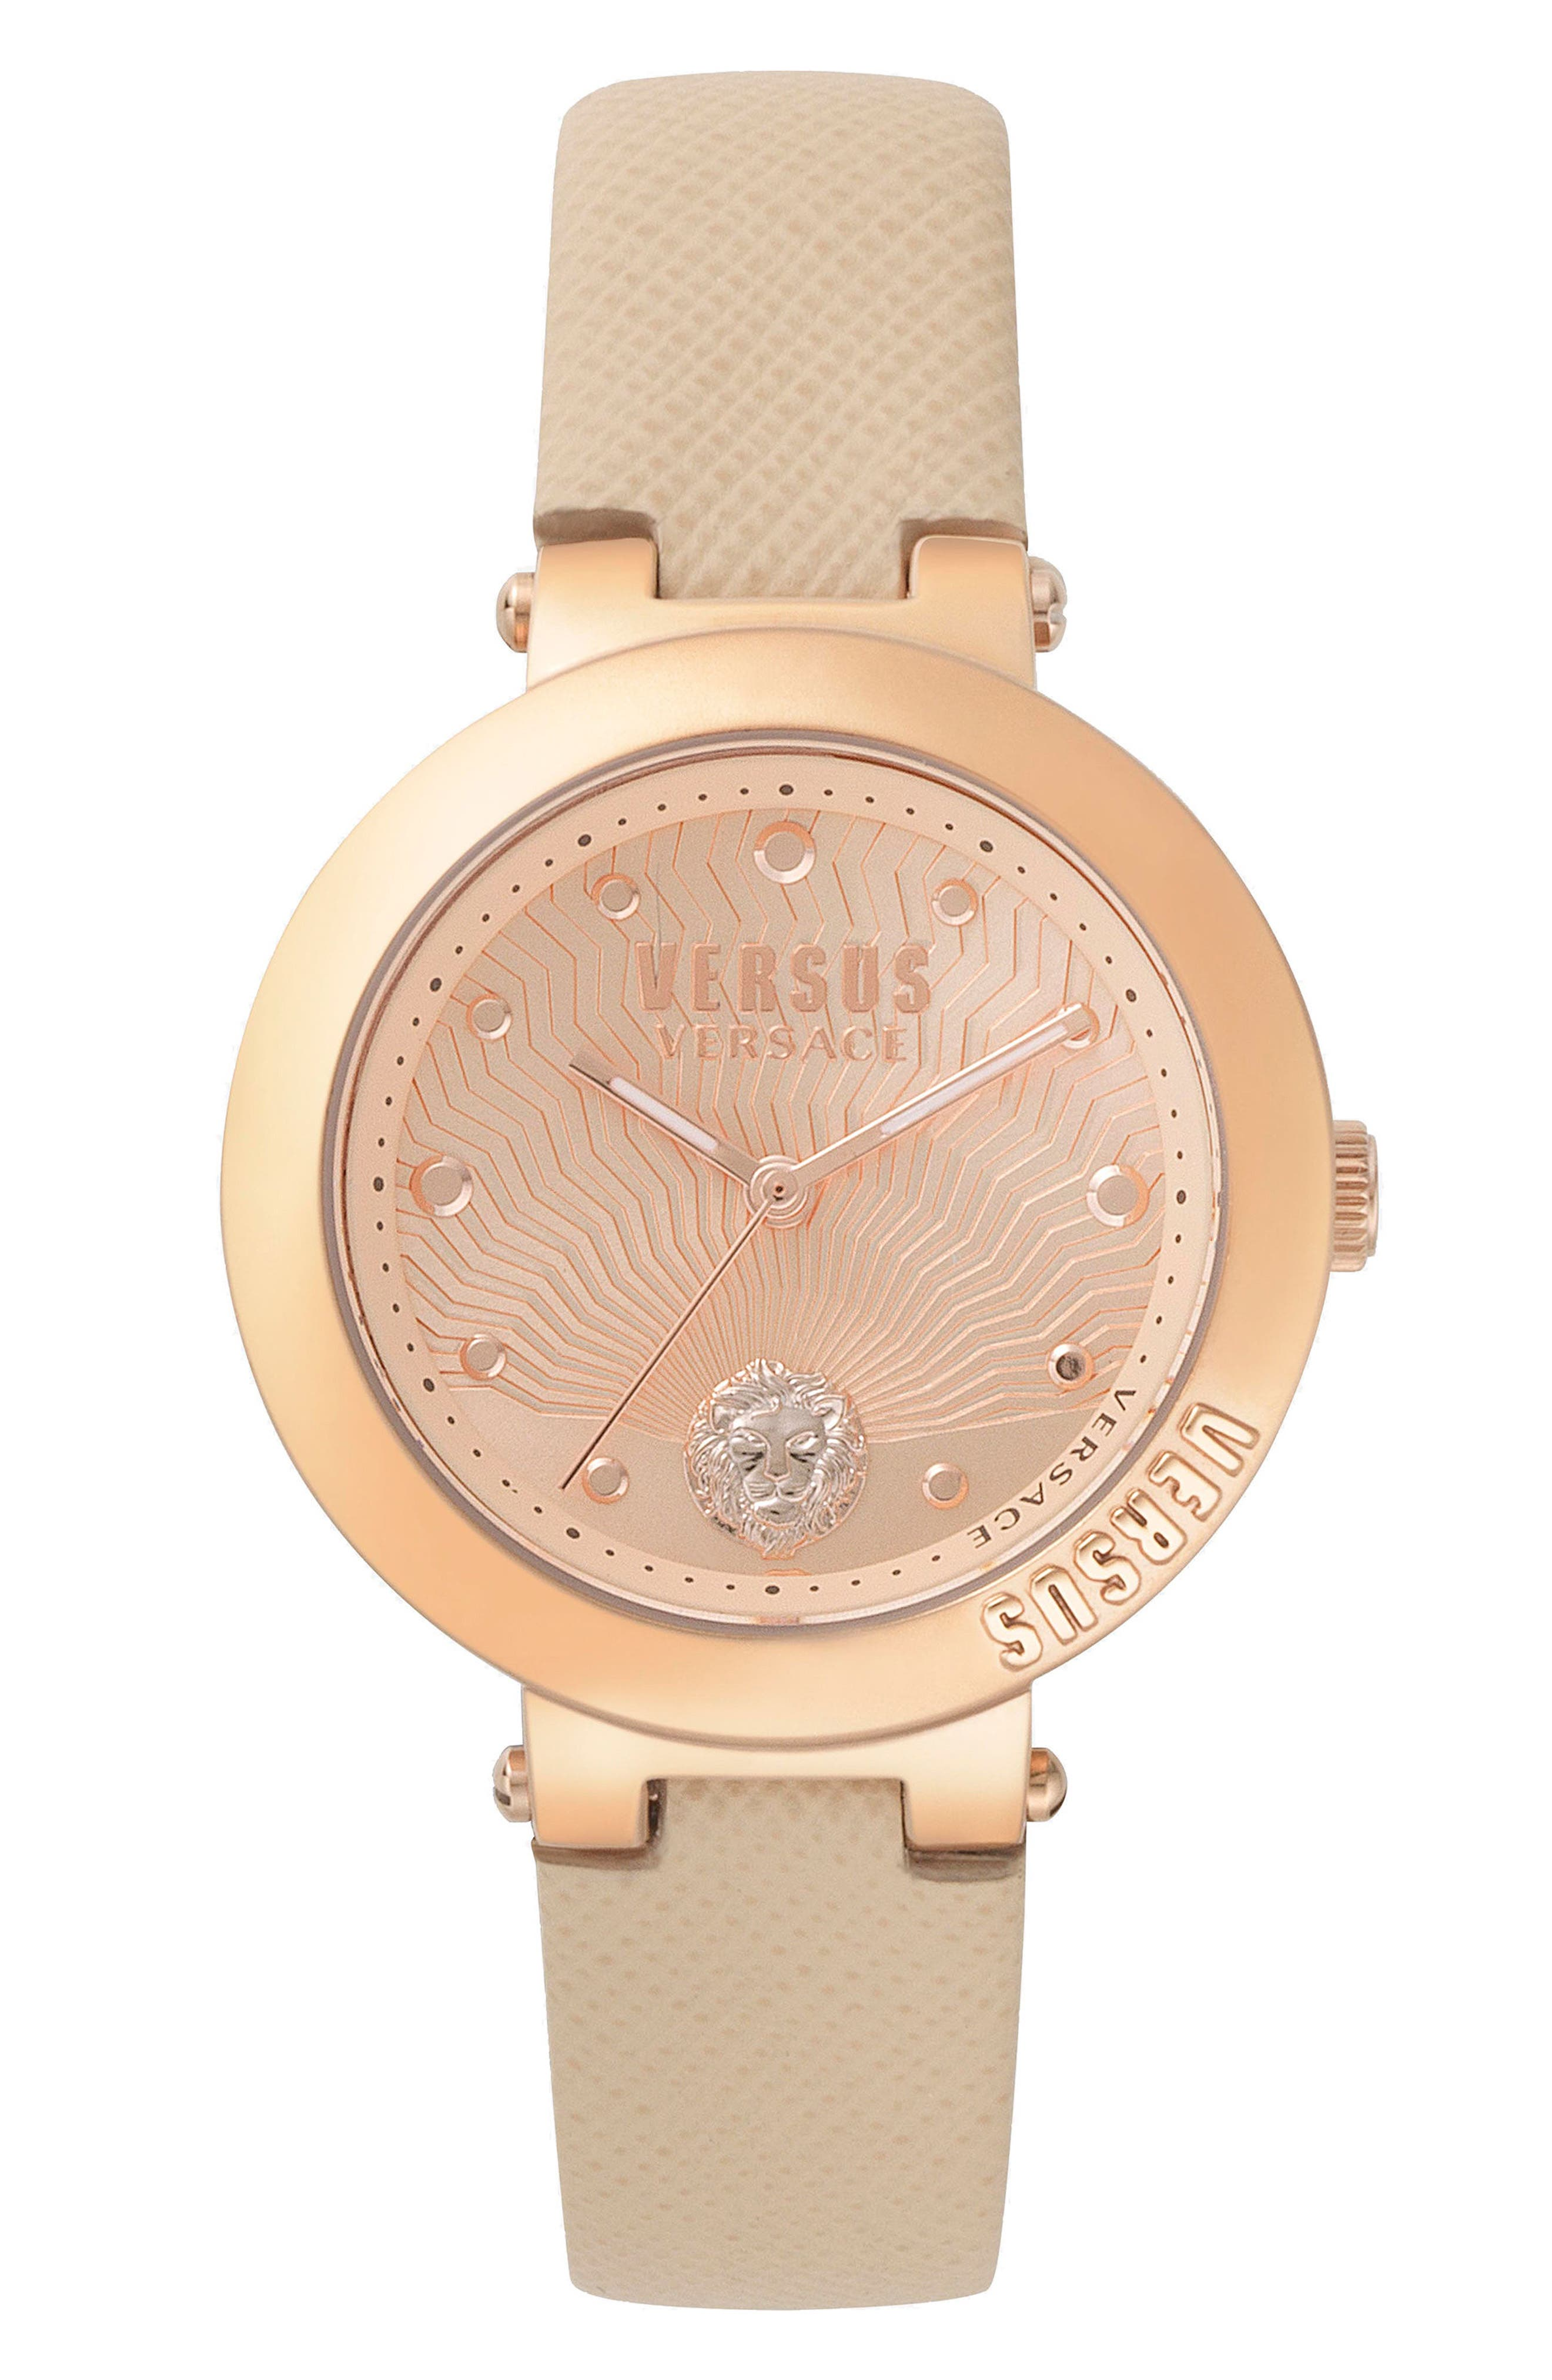 VERSUS by Versace Lantau Island Leather Strap Watch, 36mm,                         Main,                         color, Rose Gold